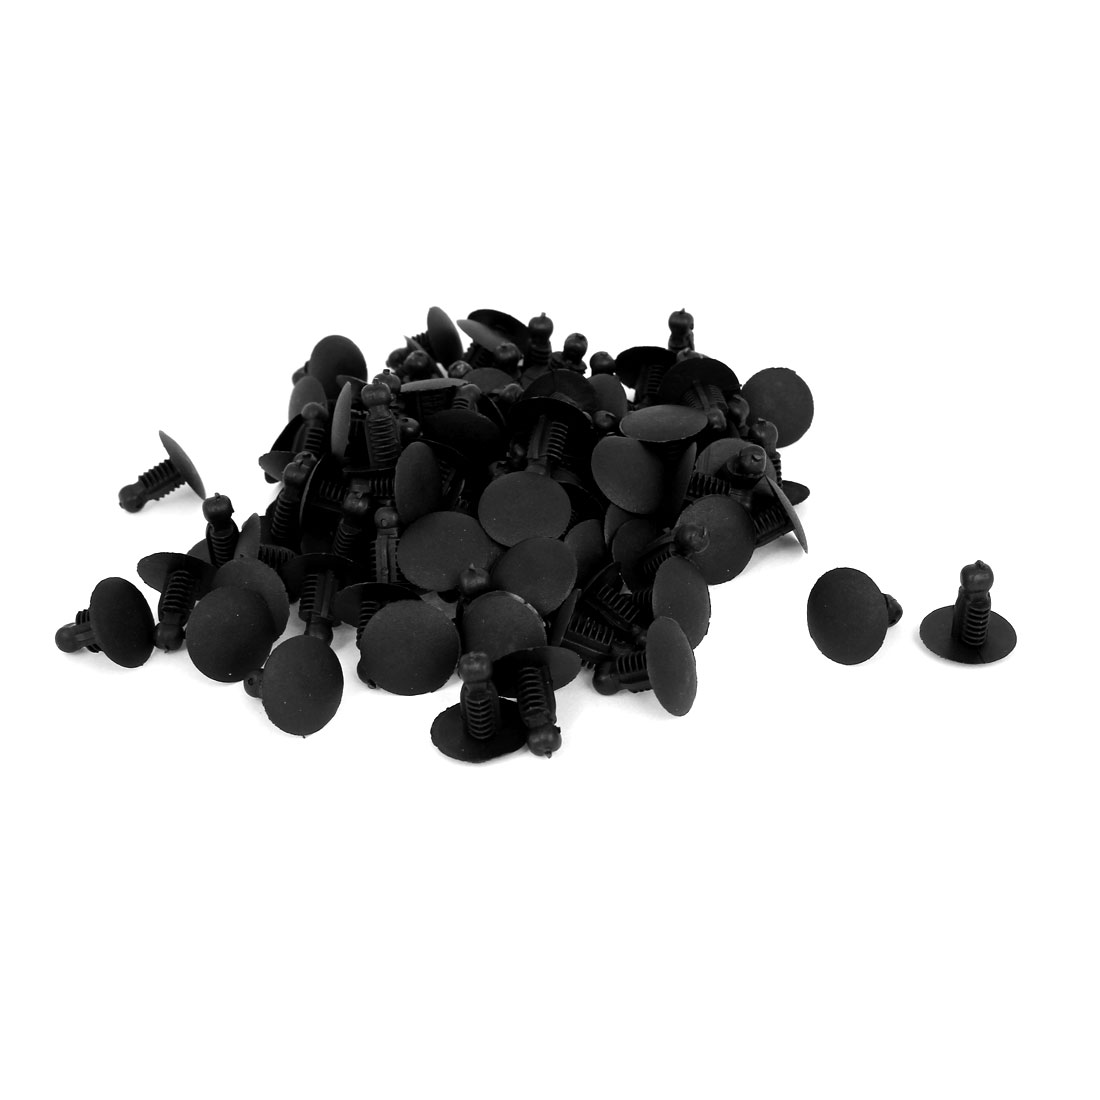 50 Pcs Black Plastic Rivet Trim Fastener Moulding Clips 8mm x 17mm x 18mm